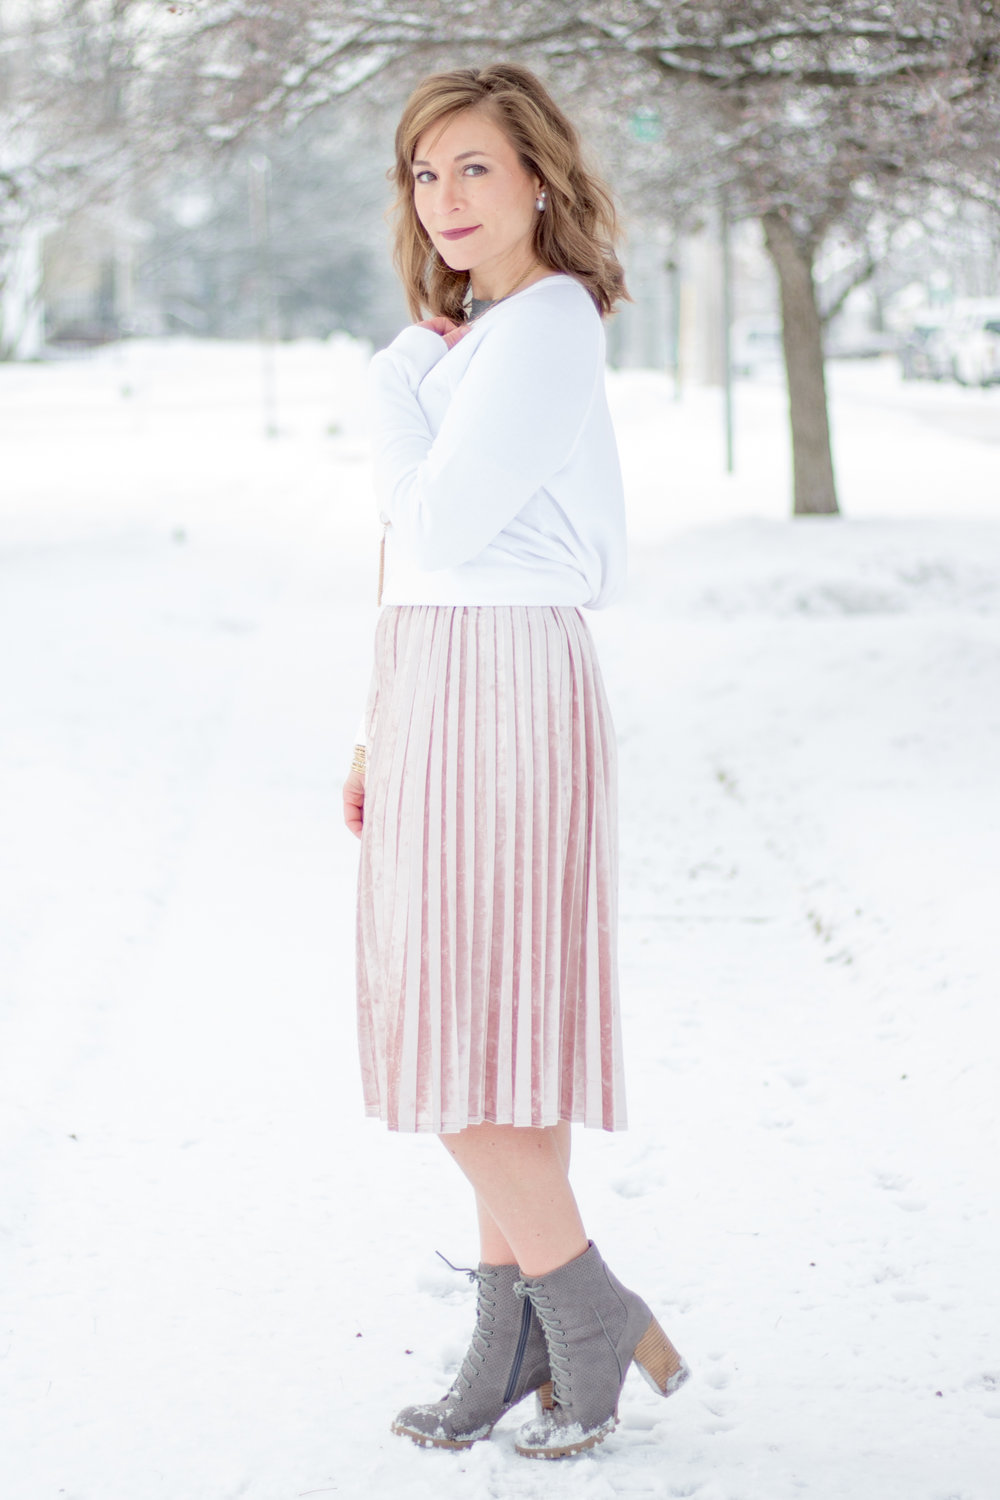 Sweatshirt and Skirt Outfit.jpg